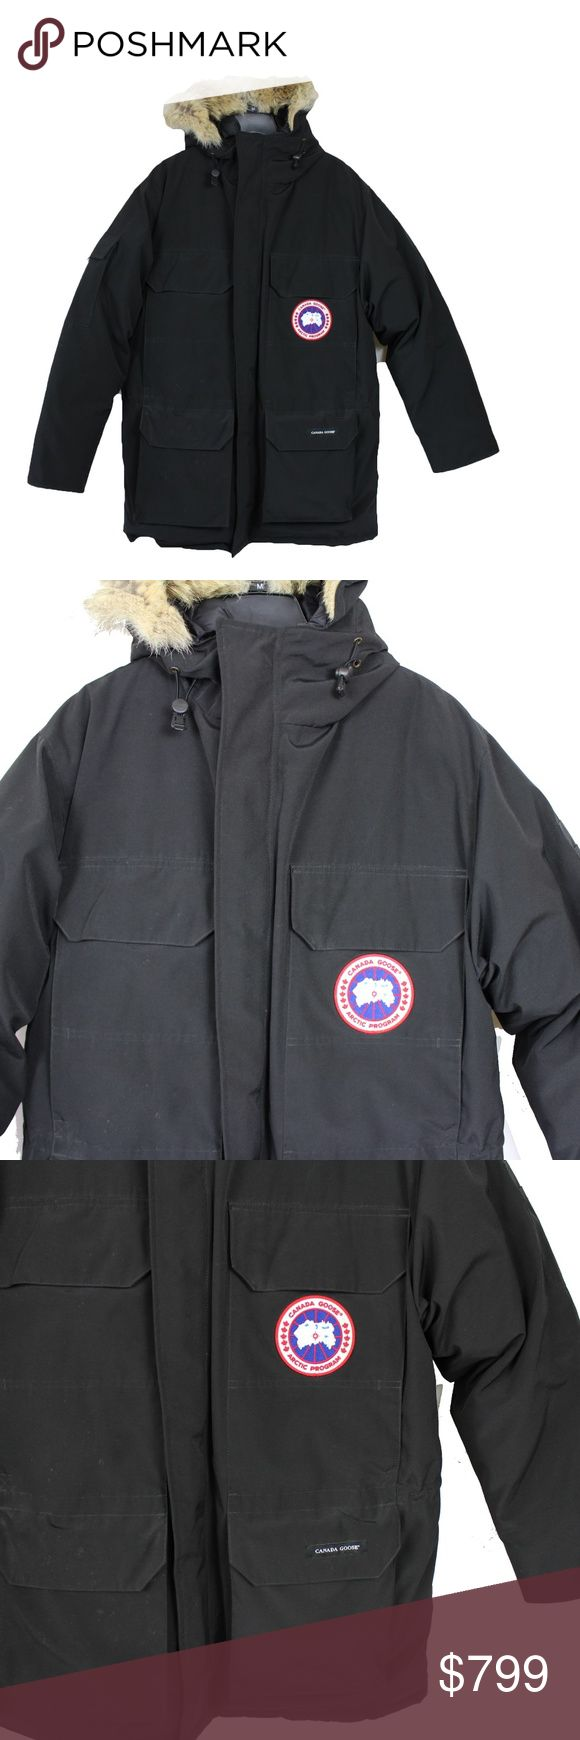 Canada Goose Expedition Parka Medium Extreme 10/10 Perfect Condition Canada Goose Expedition Parka. 624 Fill Power Down, Coyote Fur Ruff, Fleece lined, Cool patches, 6 exterior pockets, handwarmer pockets, waist drawcords, mid waistand elasacized snow skirt. These are for extreme temperatures and used by scientists. Worn only a few times and just have some fluff stuck to the Velcro, in which I will remove before shipping :) Please do not hesitate to ask any questions about this! Fits True To…